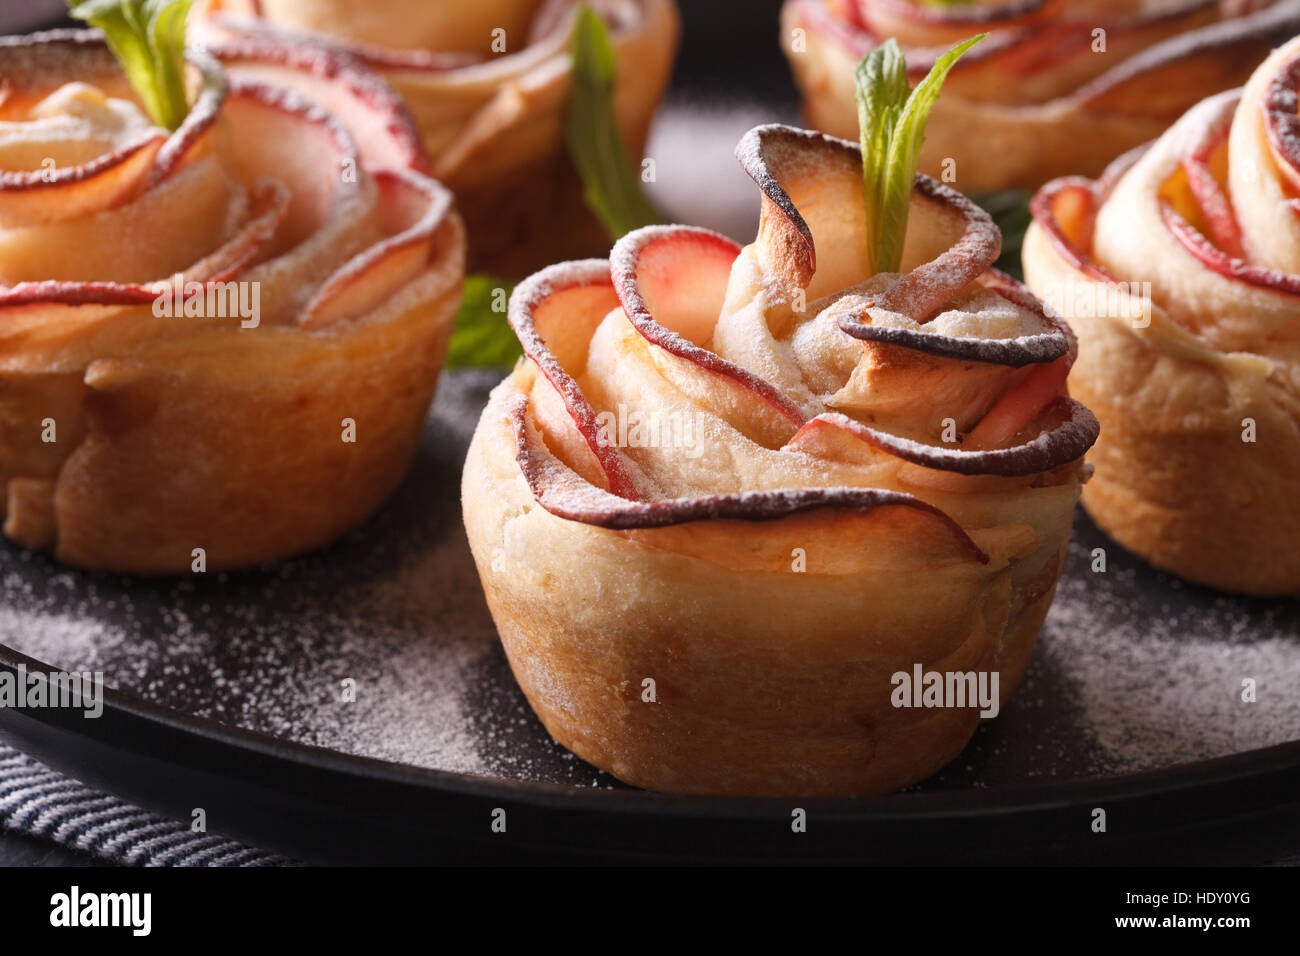 Festive pastries: Rose out of an apple closeup. horizontal - Stock Image